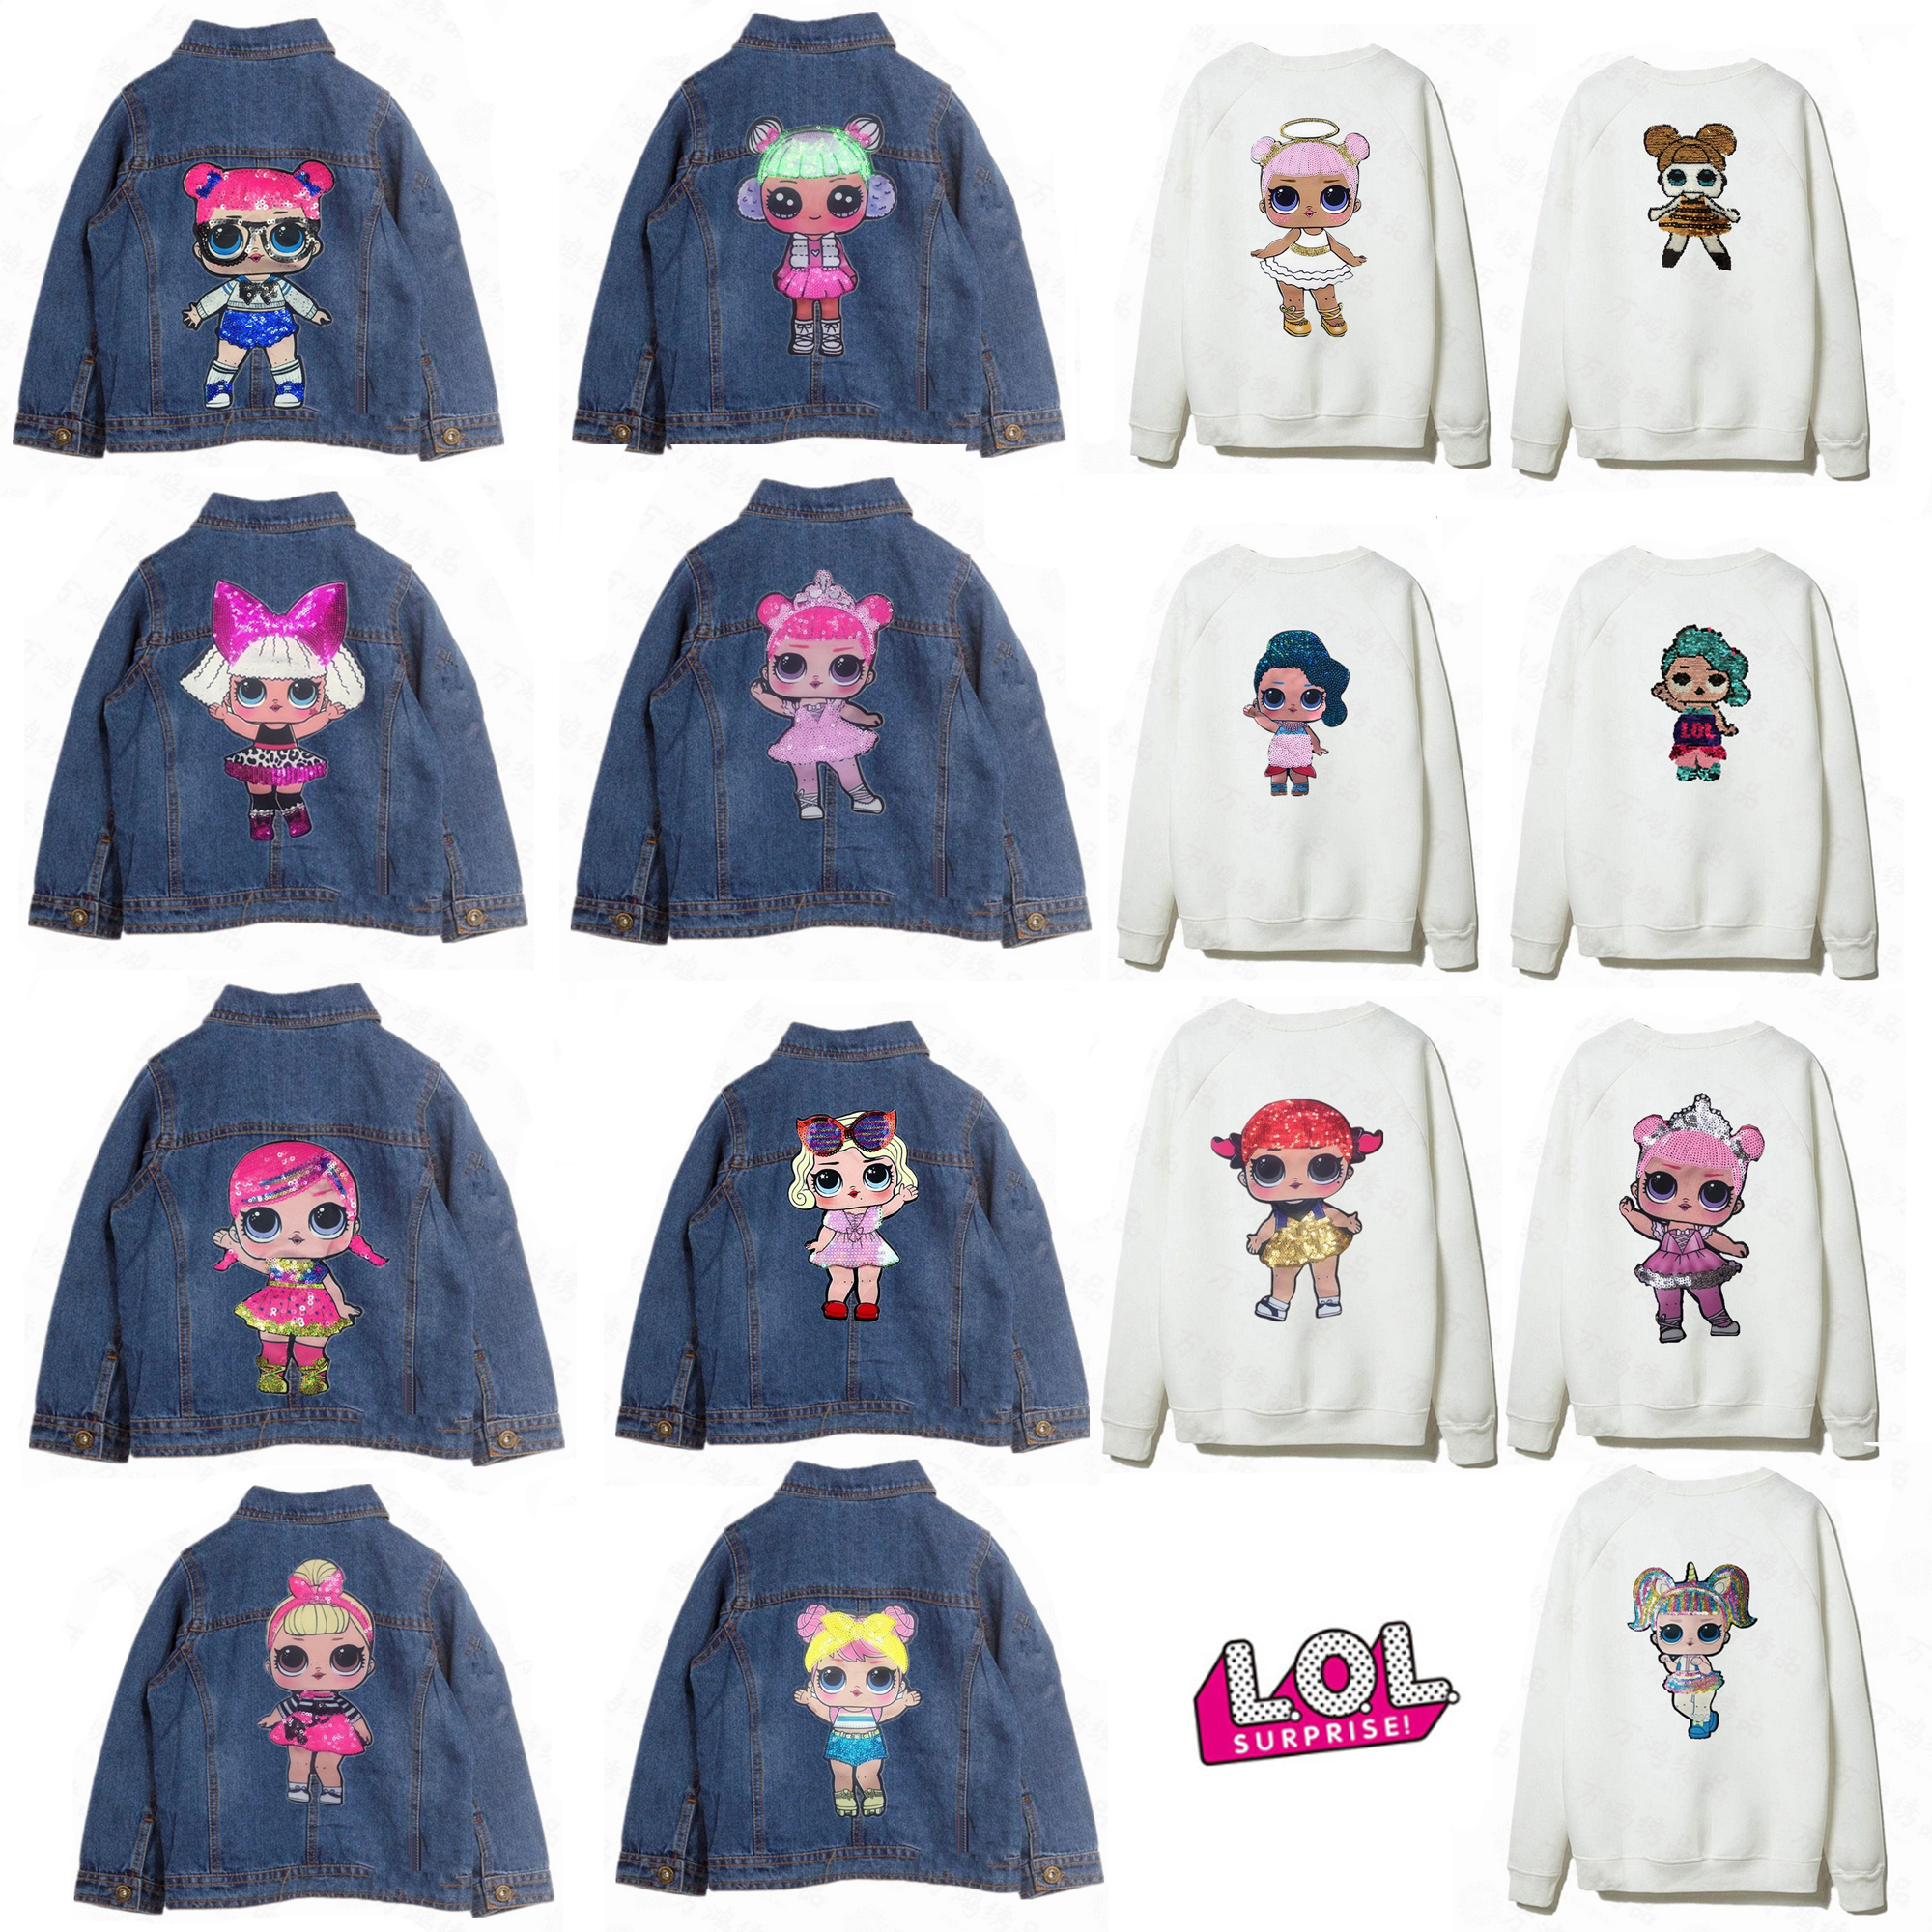 LOL Surprise Cartoon Patches Women Fashion Doll Girls Fashion Boy Doll Embroidery Patch DIY Garment Decoration Sequins Cloth Toy